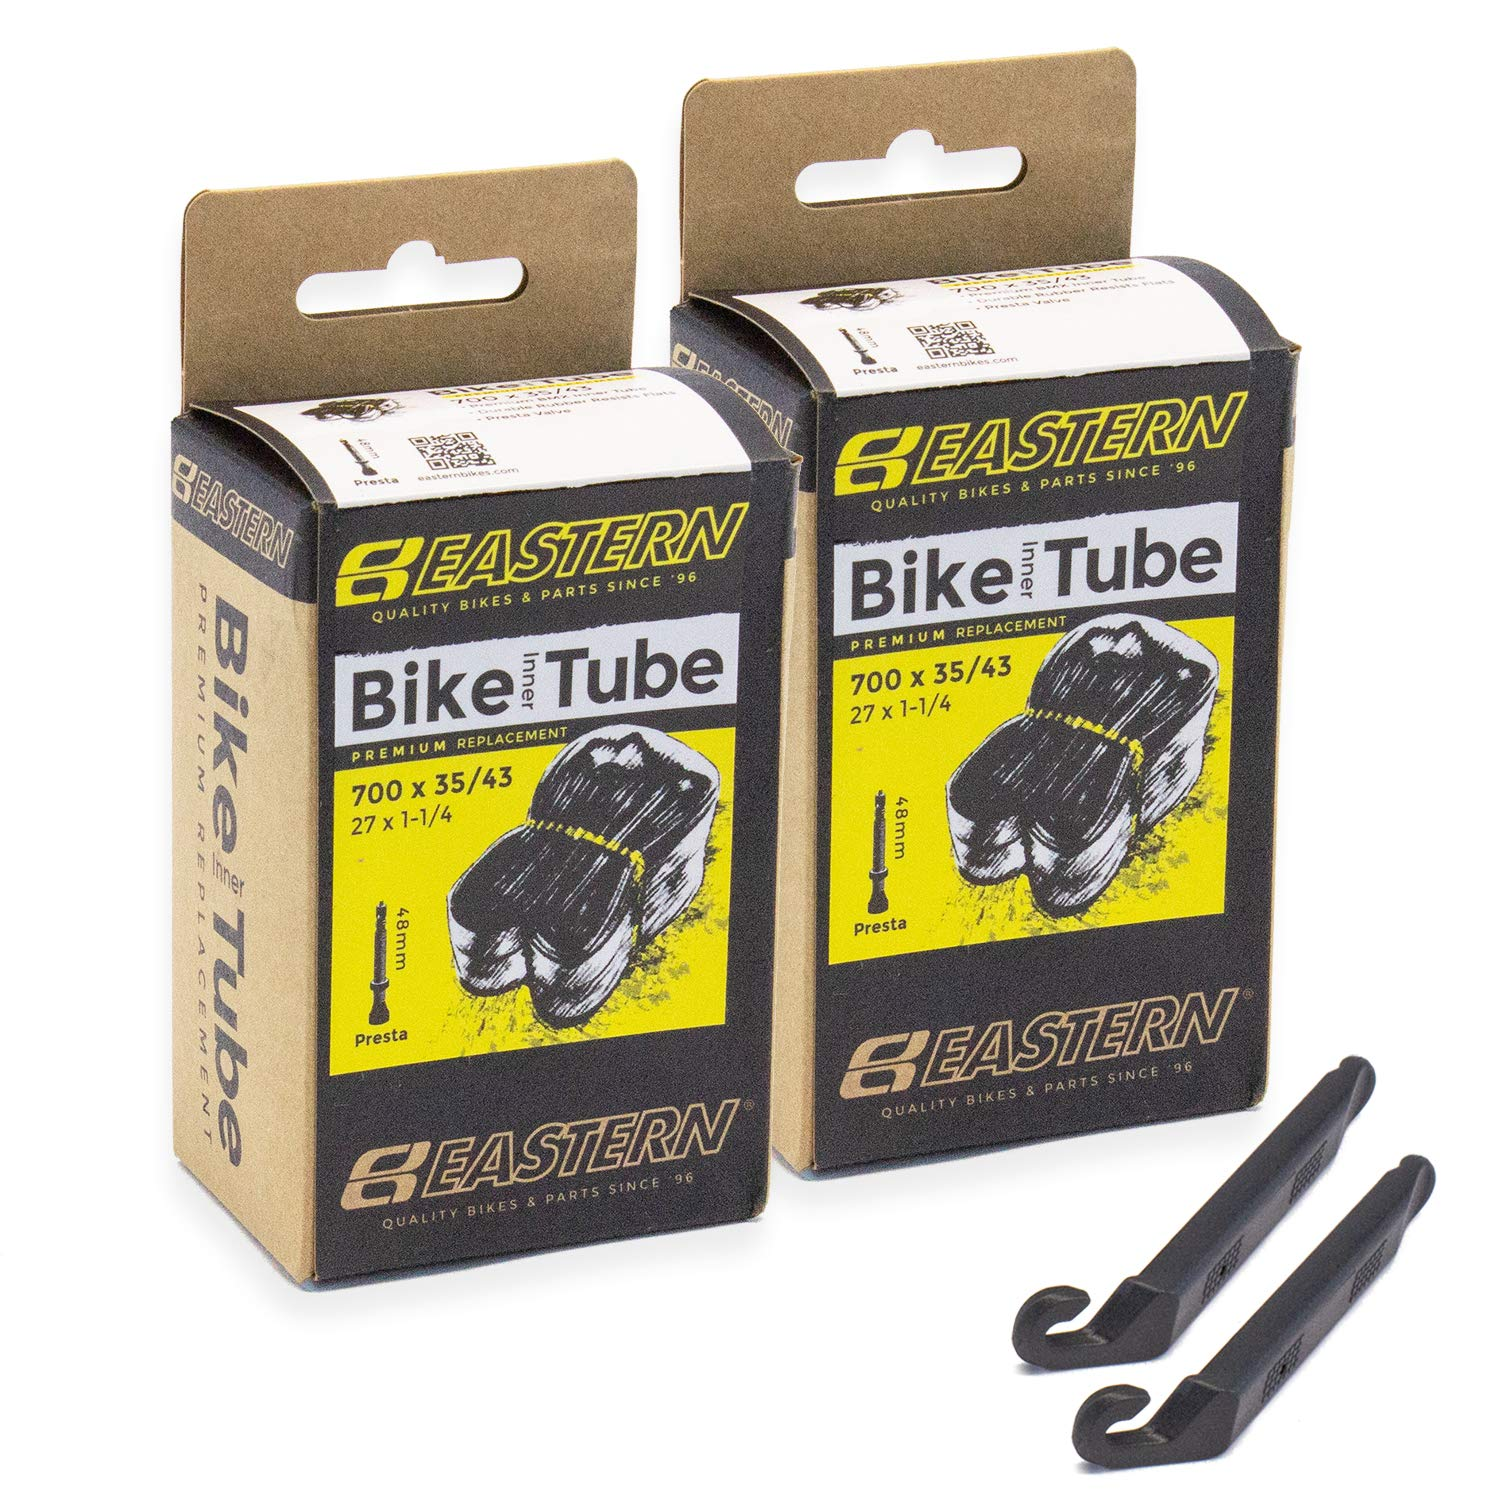 1,2,3,4,5 Packs 33,39,48,60mm 27 x 1-1//4 Eastern Bikes 700c x 35//43 /& Repair Kit Comes with Tire Lever Tools. Replacement Tube Kits Presta Valve